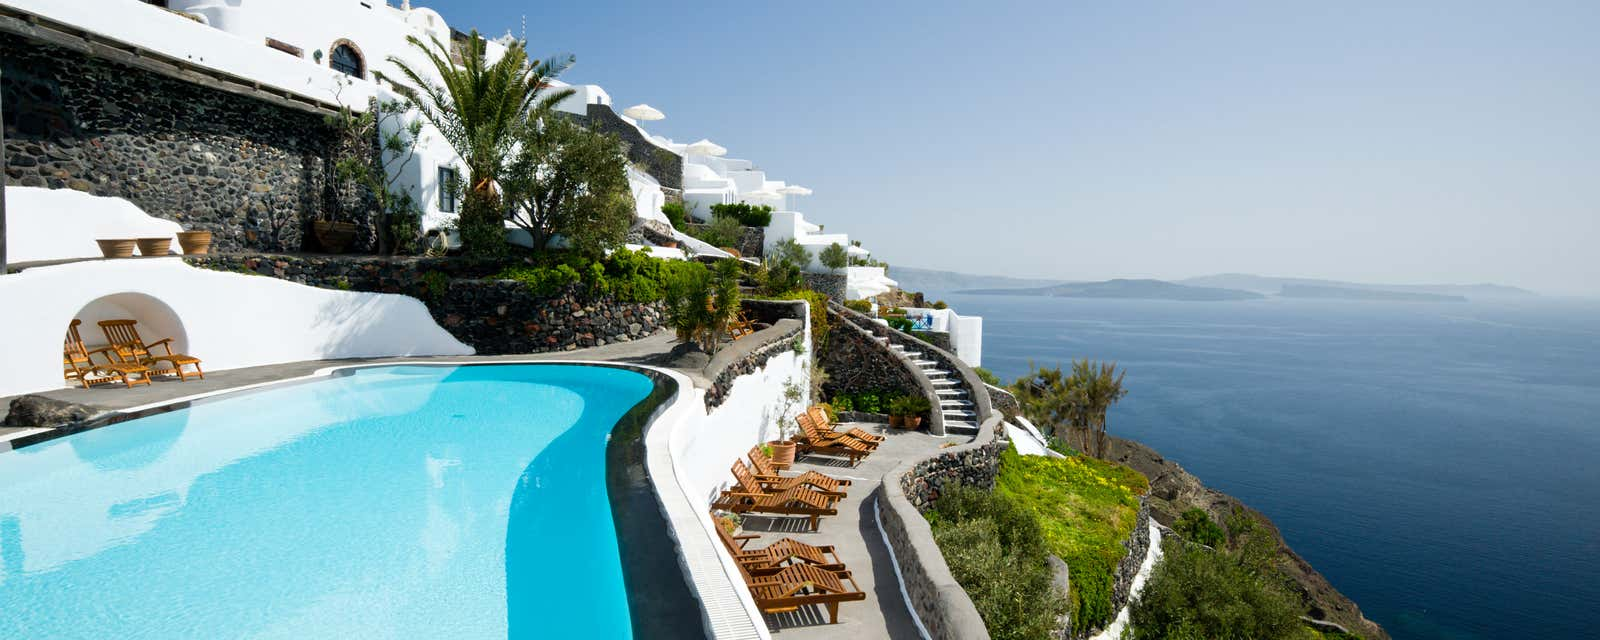 A pool with a view at Perivolas Hotel, Santorini, Greece.